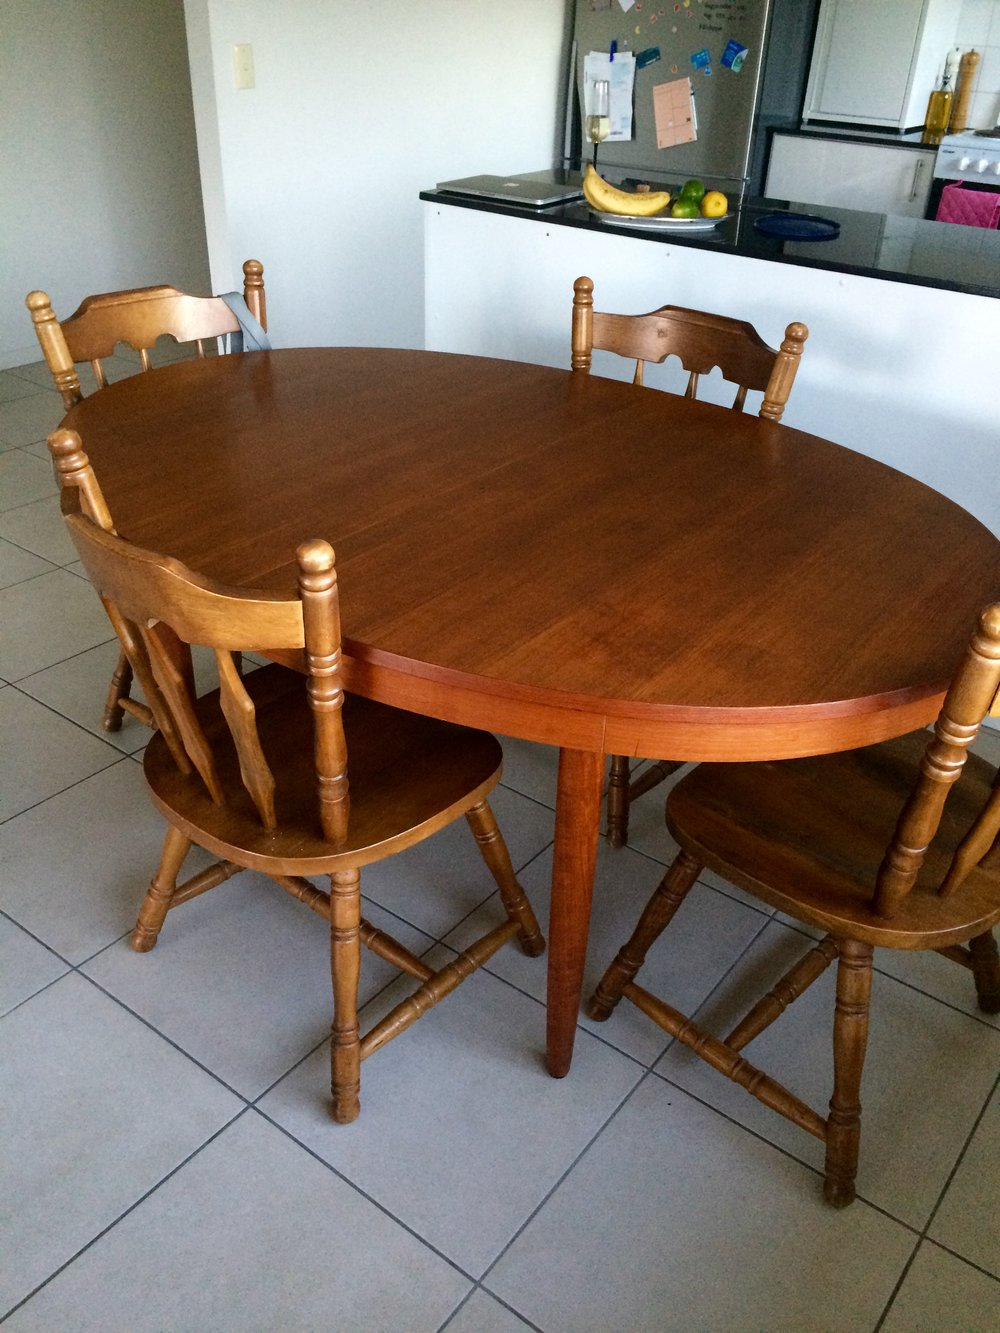 Before – with the old chairs